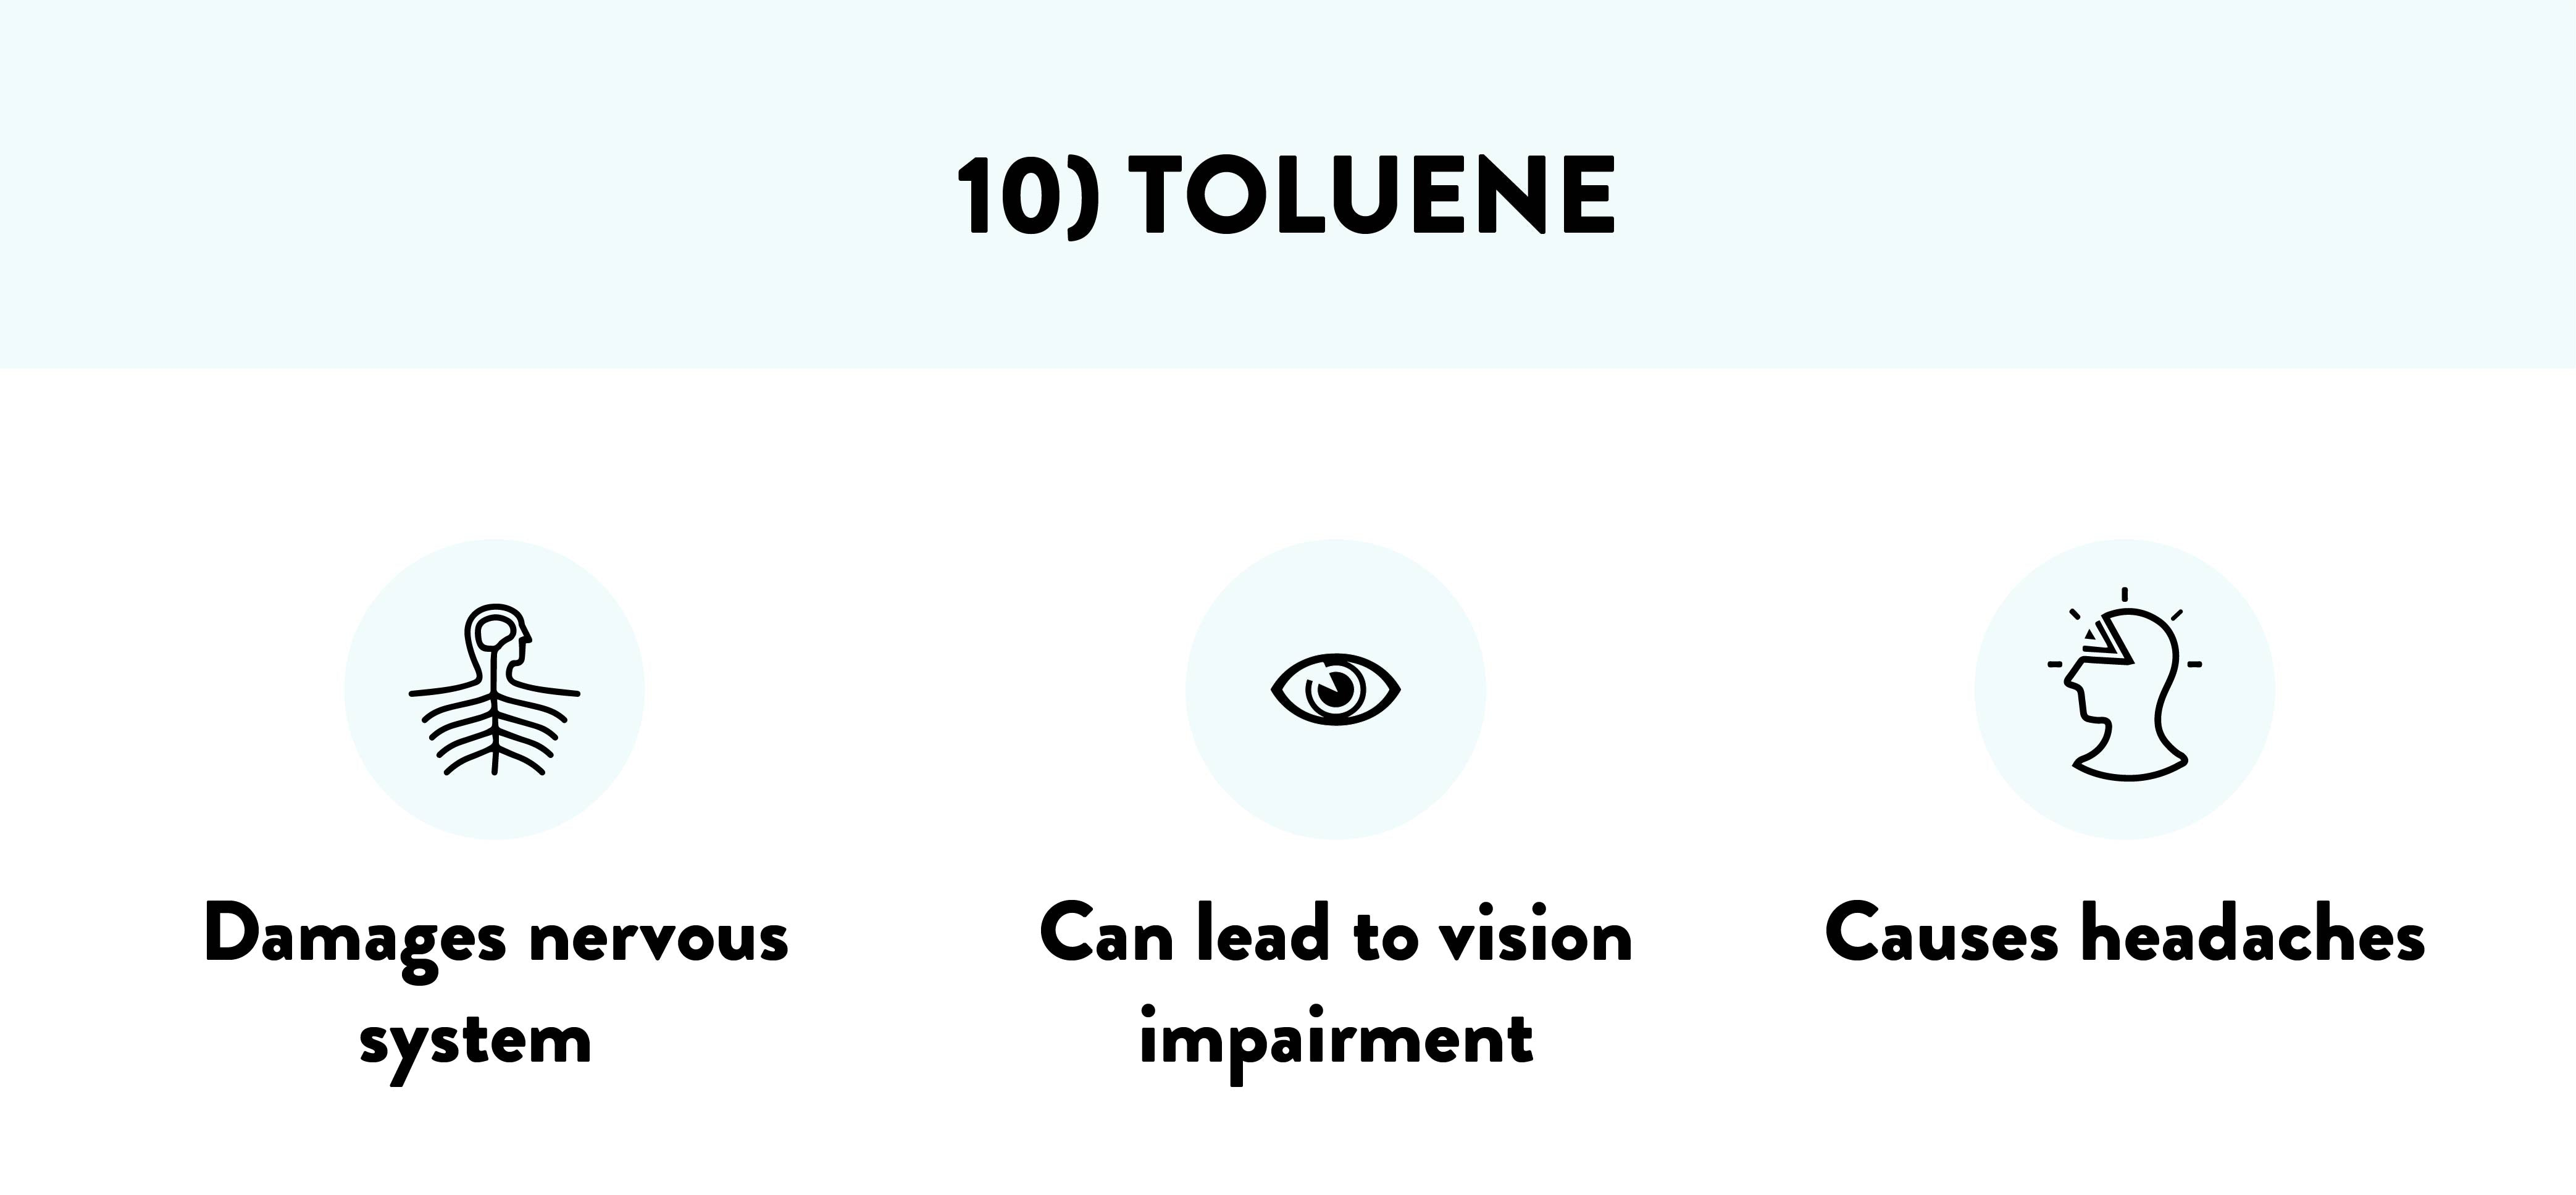 This is an image of Toluene